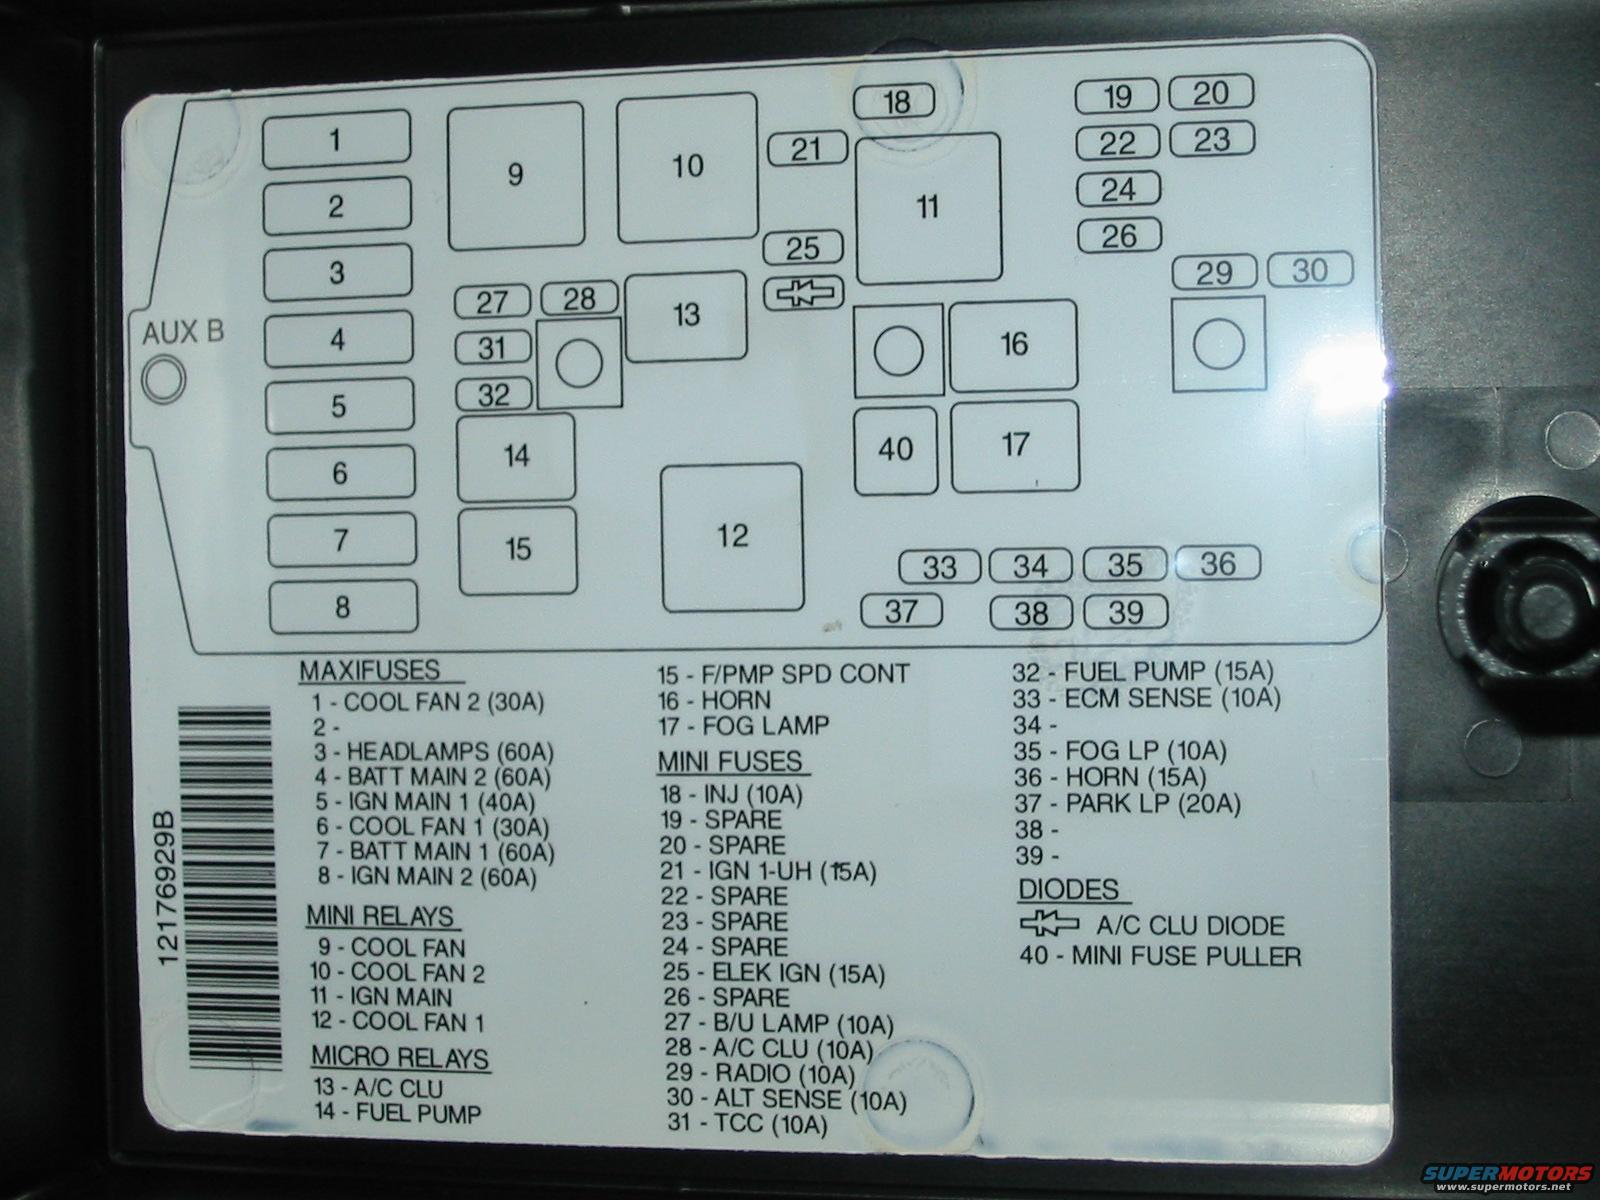 Honda Goldwing Starter Wiring Diagram Also Ford Mustang Wiring Diagram